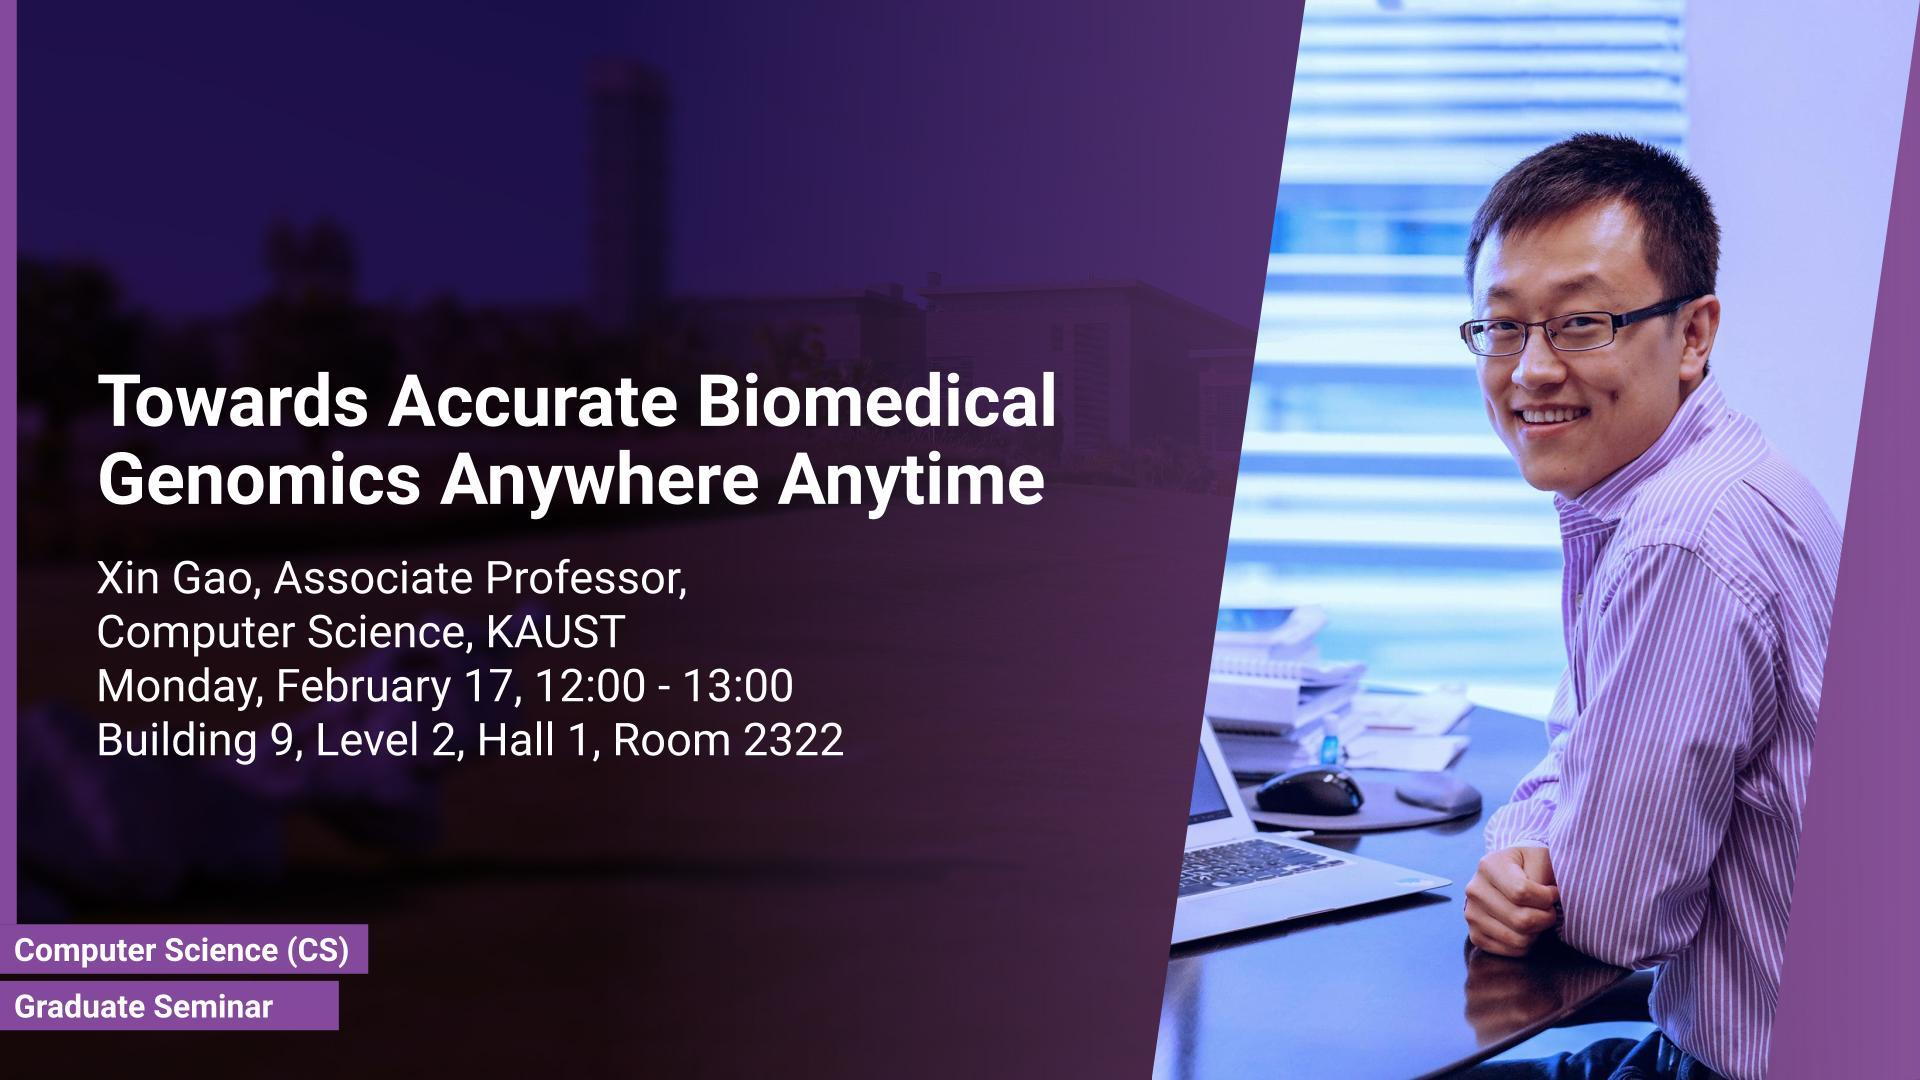 KAUST CEMSE CS Graduate Seminar Xin Gao Towards Accurate Biomedical Genomics Anywhere Anytime